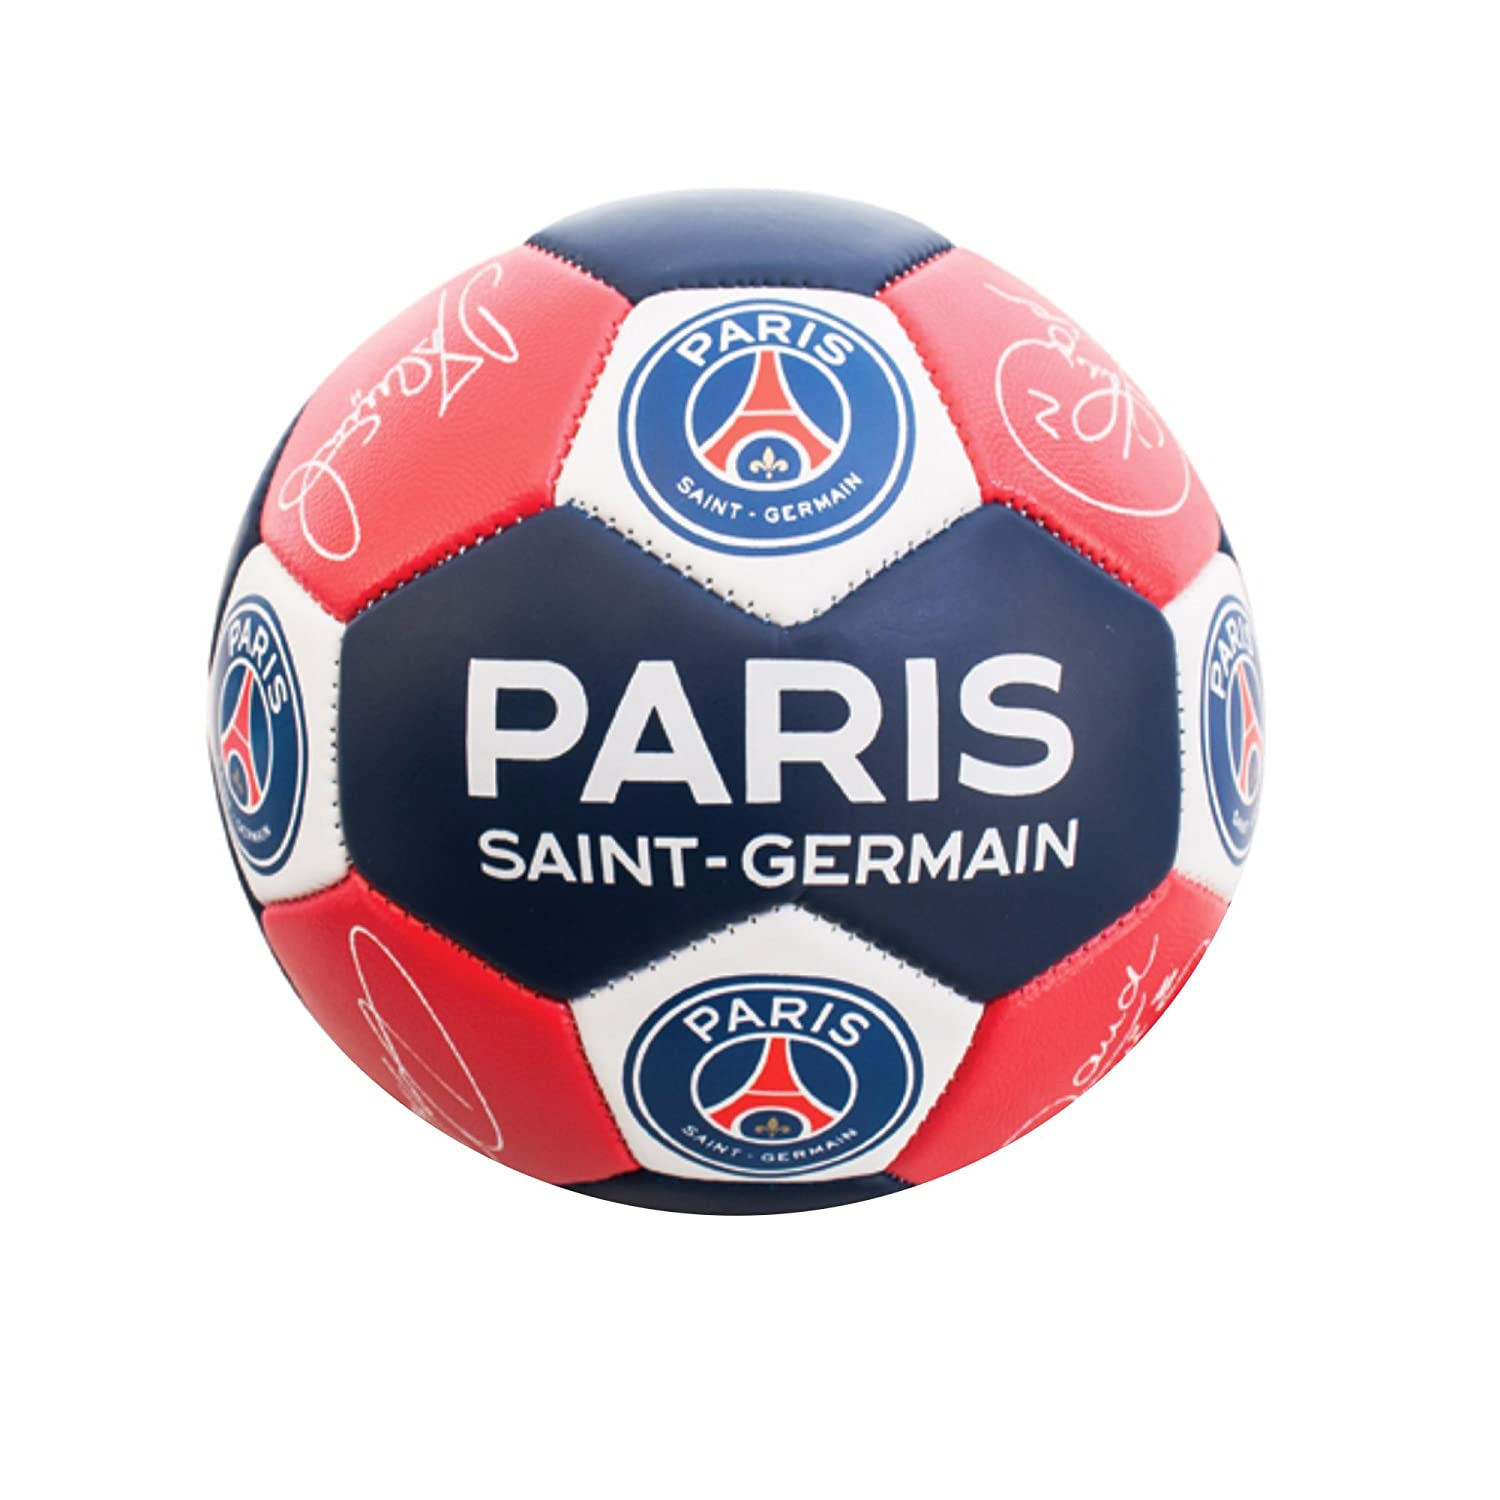 Paris Saint Germain Football Club Nuskin Signature Football ...